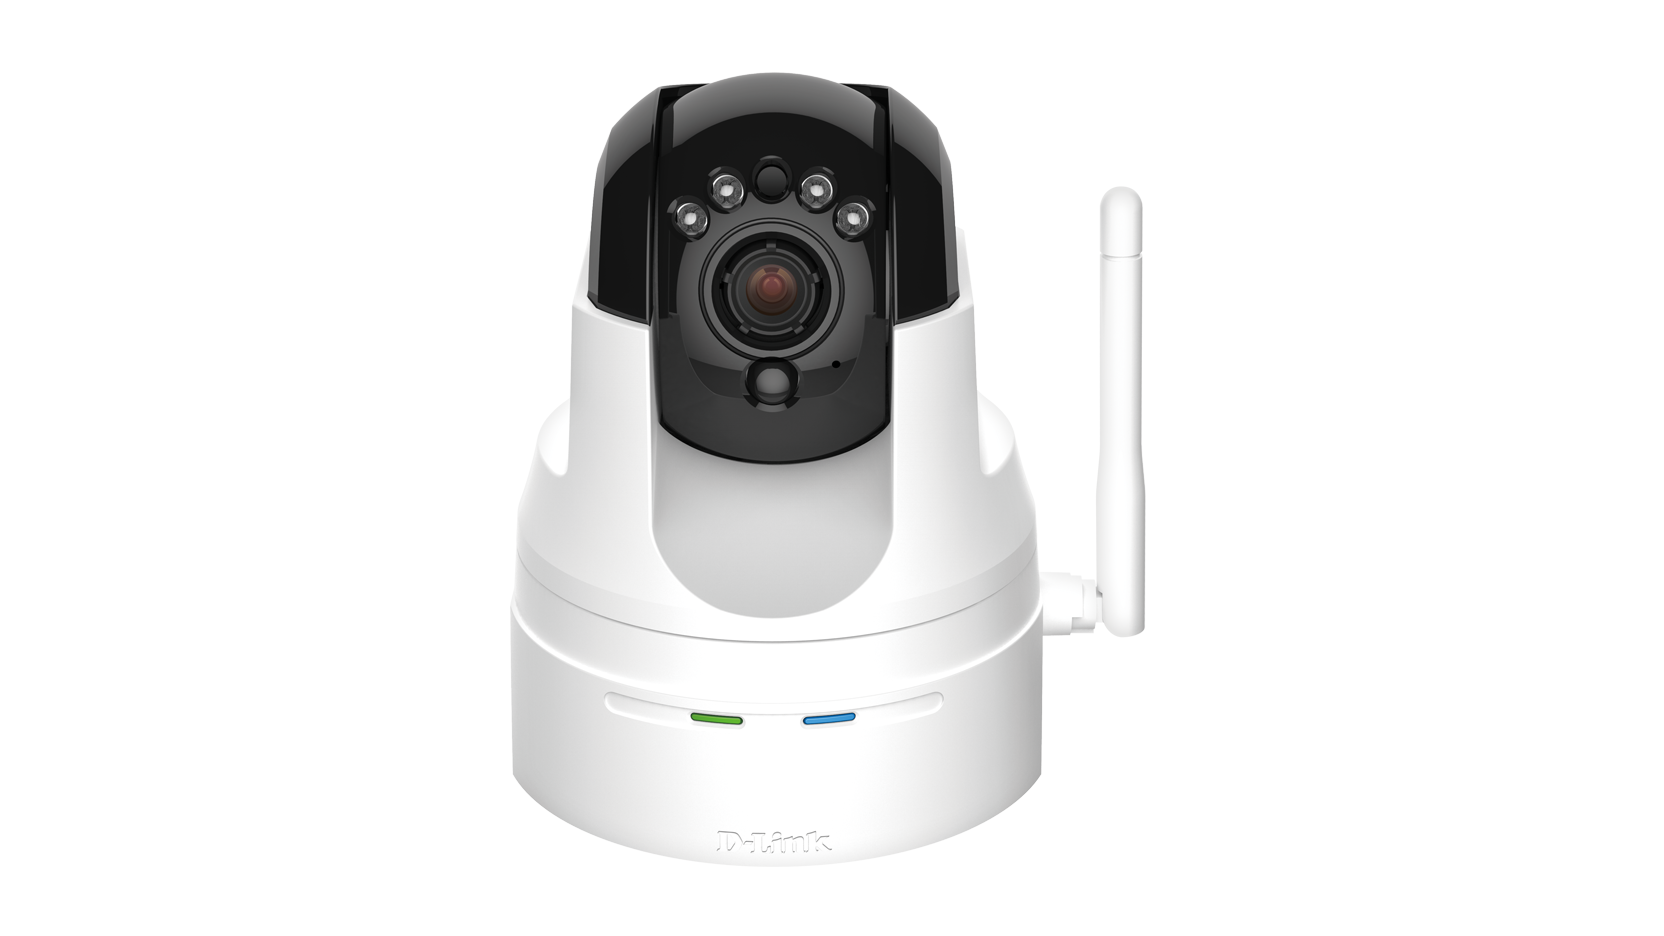 HD Pan   Tilt Wi-Fi Camera  7bcbad77a